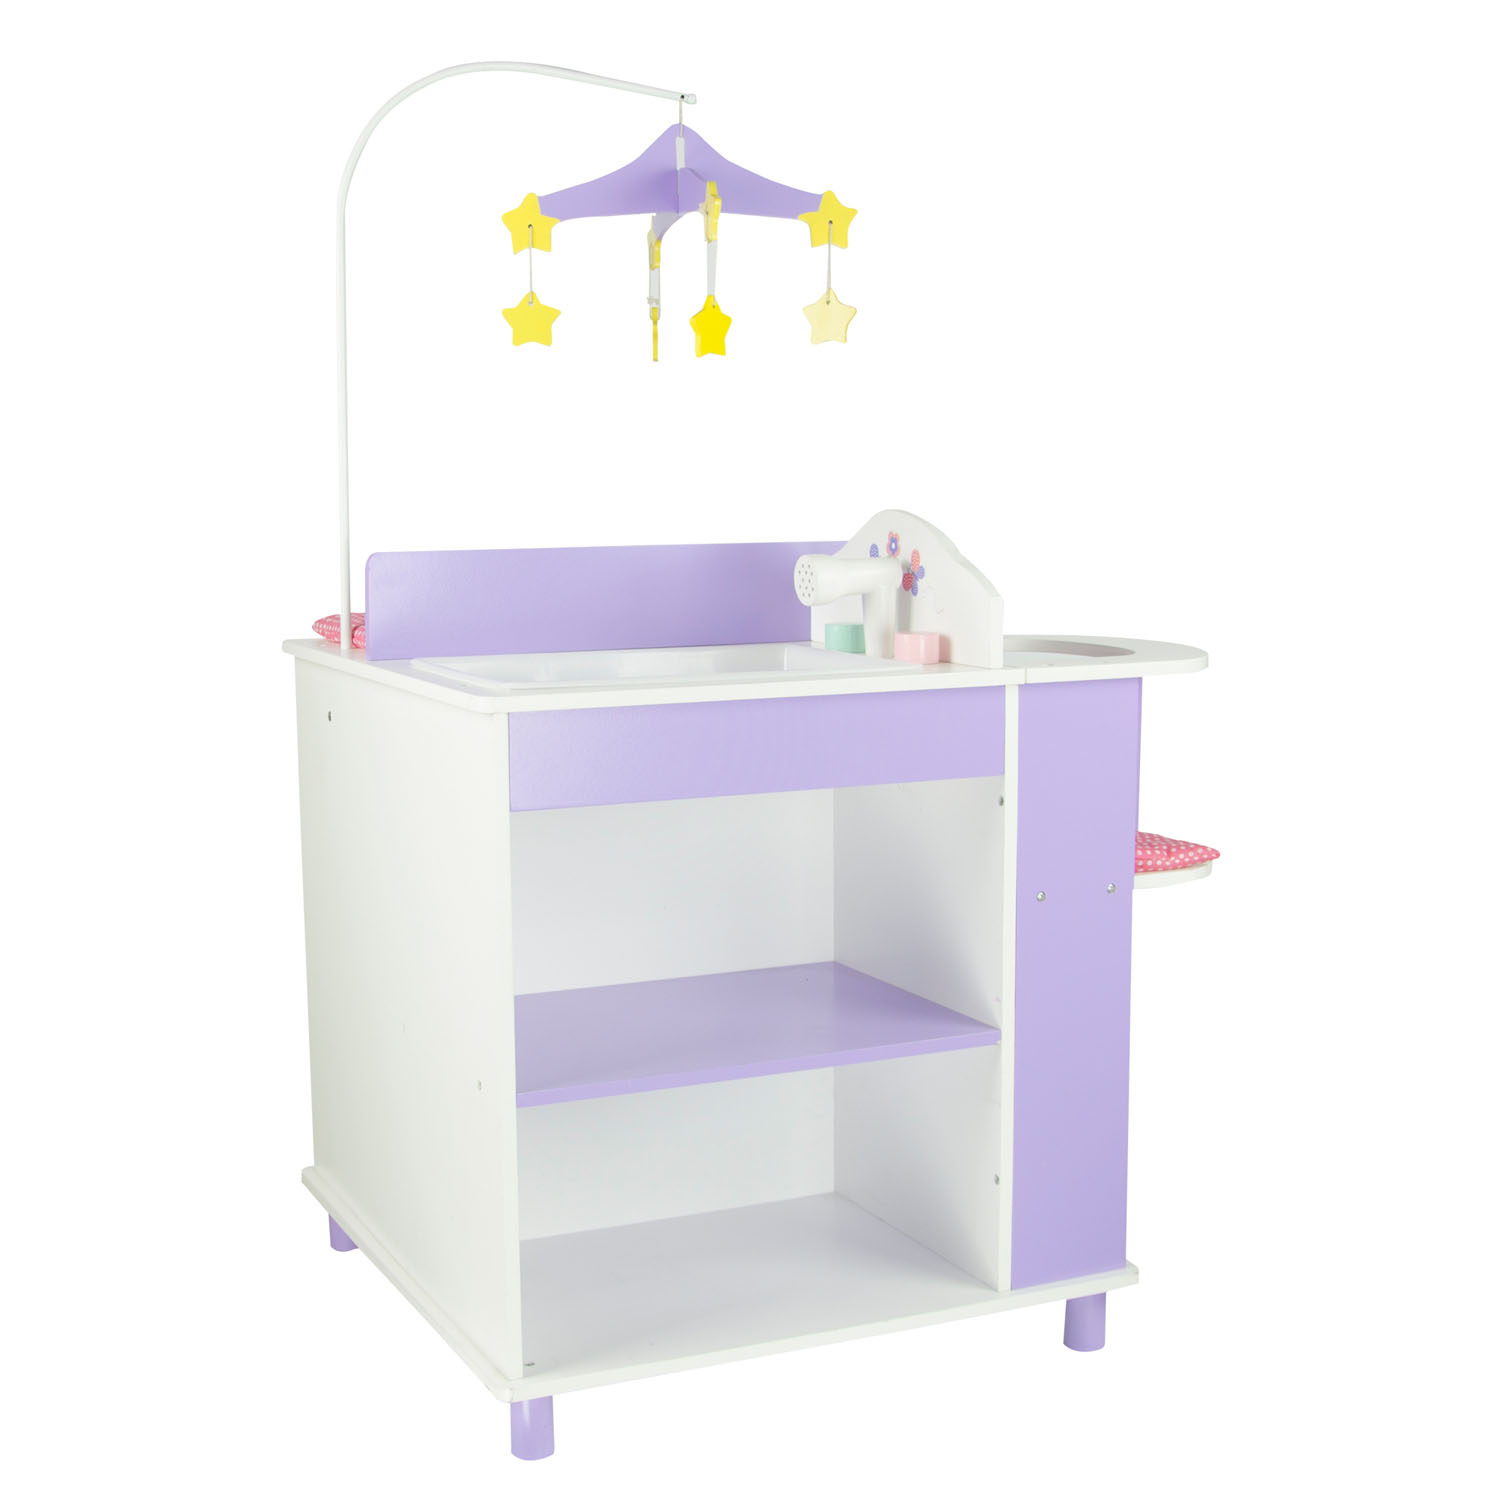 "Olivia's Little World Little Princess 18"" Doll Furniture - Baby Changing Station with Storage"